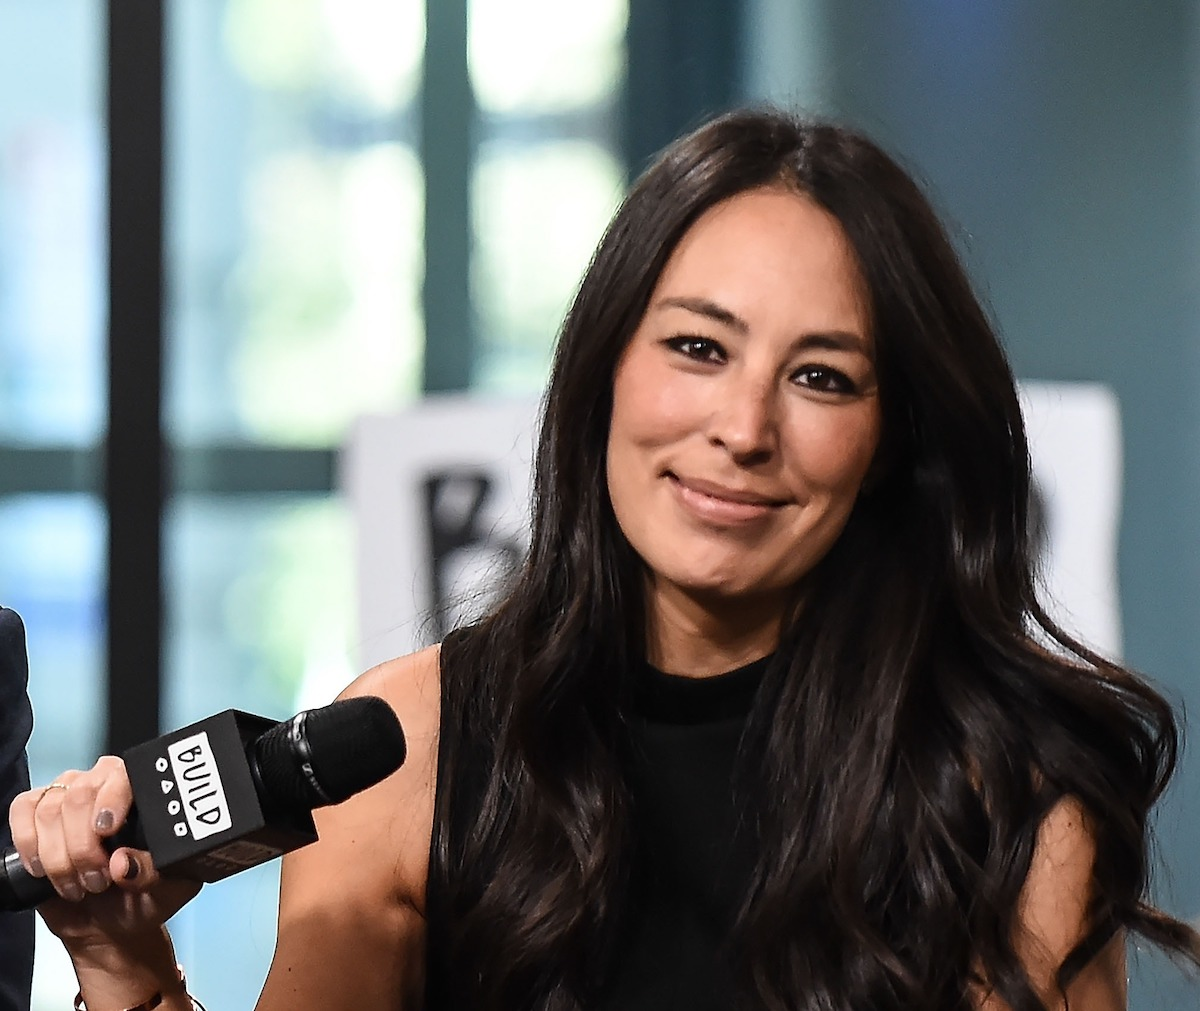 Joanna Gaines at the Build event for Chip Gaines' book Capital Gains